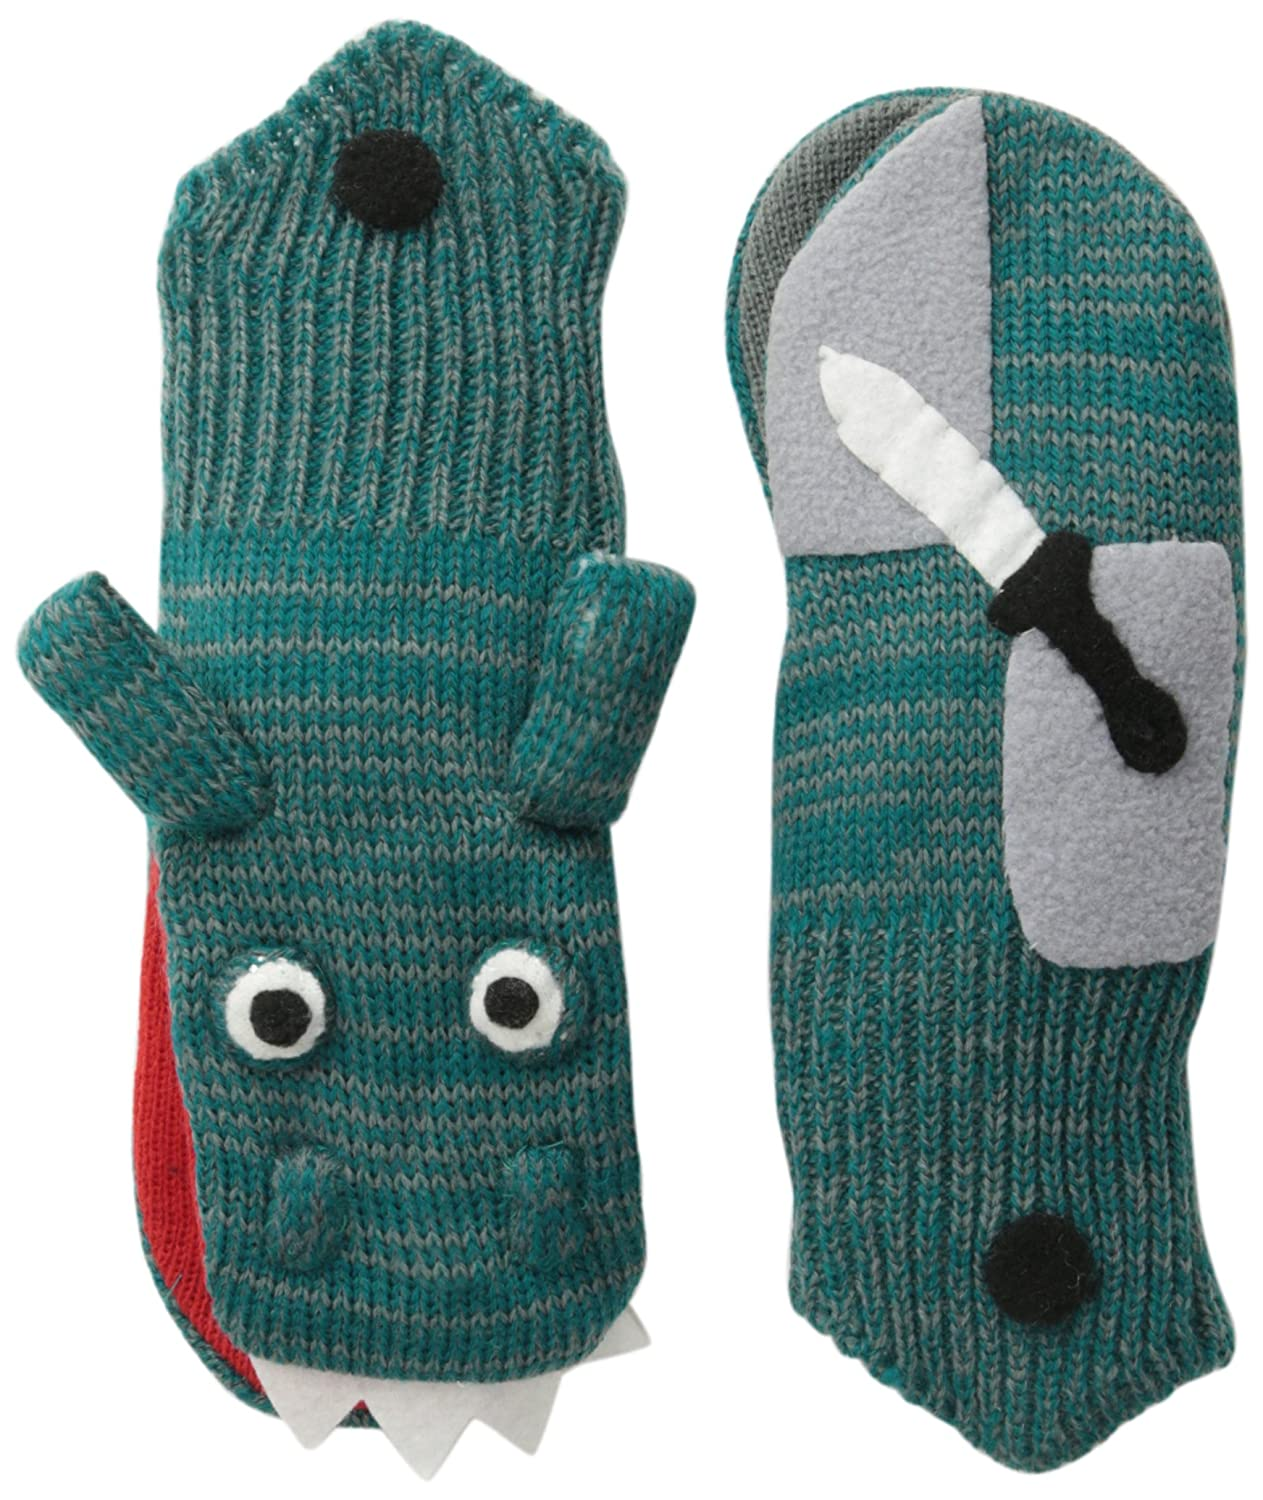 Kidorable Green Dragon Knight Soft Acrylic Mittens for Boys w/Puppet Dragon Mouth 502216